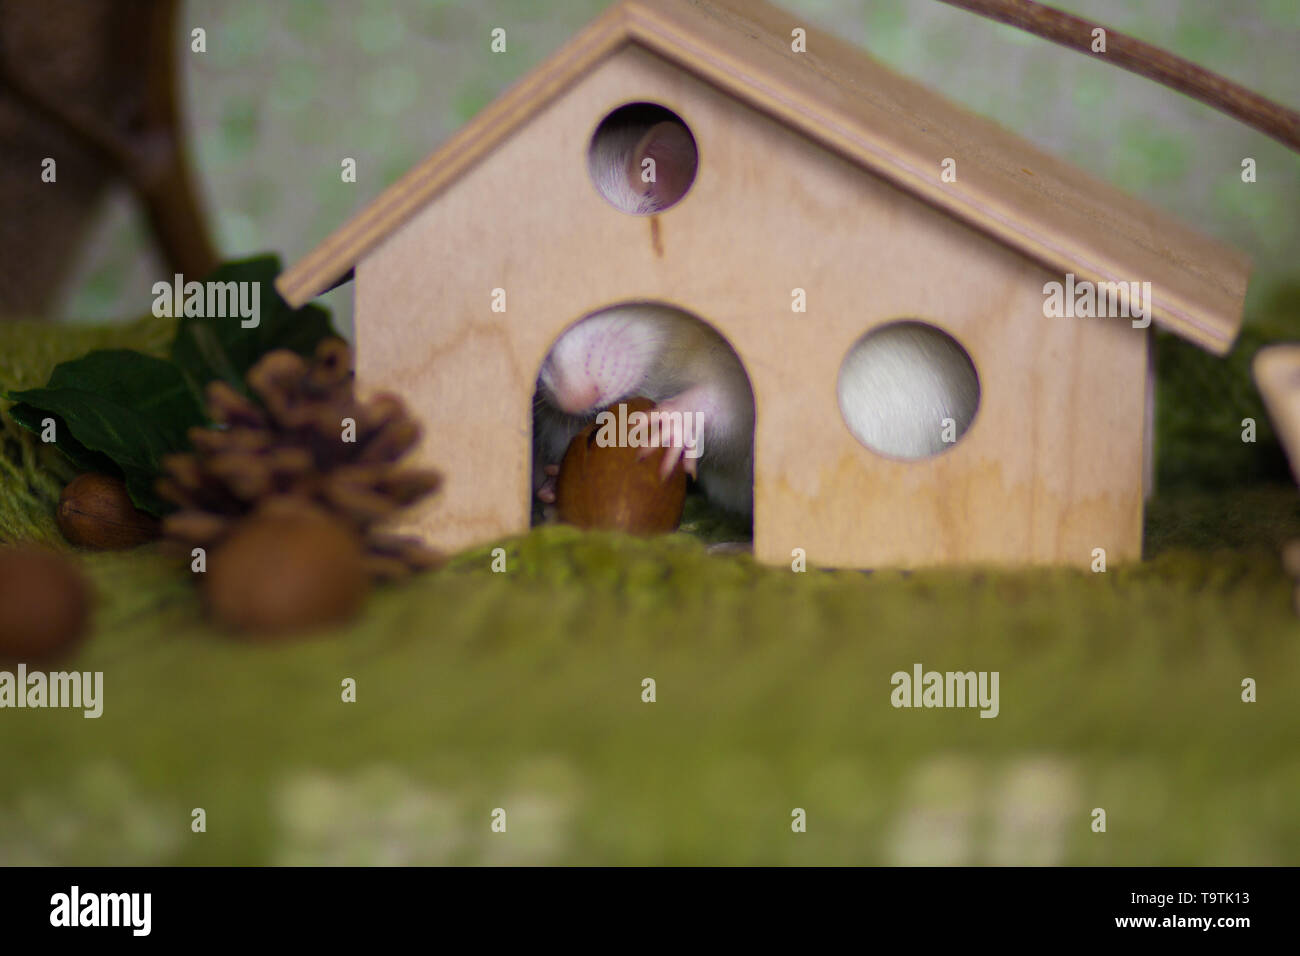 The concept of a cozy home. Rat sitting in the house. The mouse hid in a hole. - Stock Image